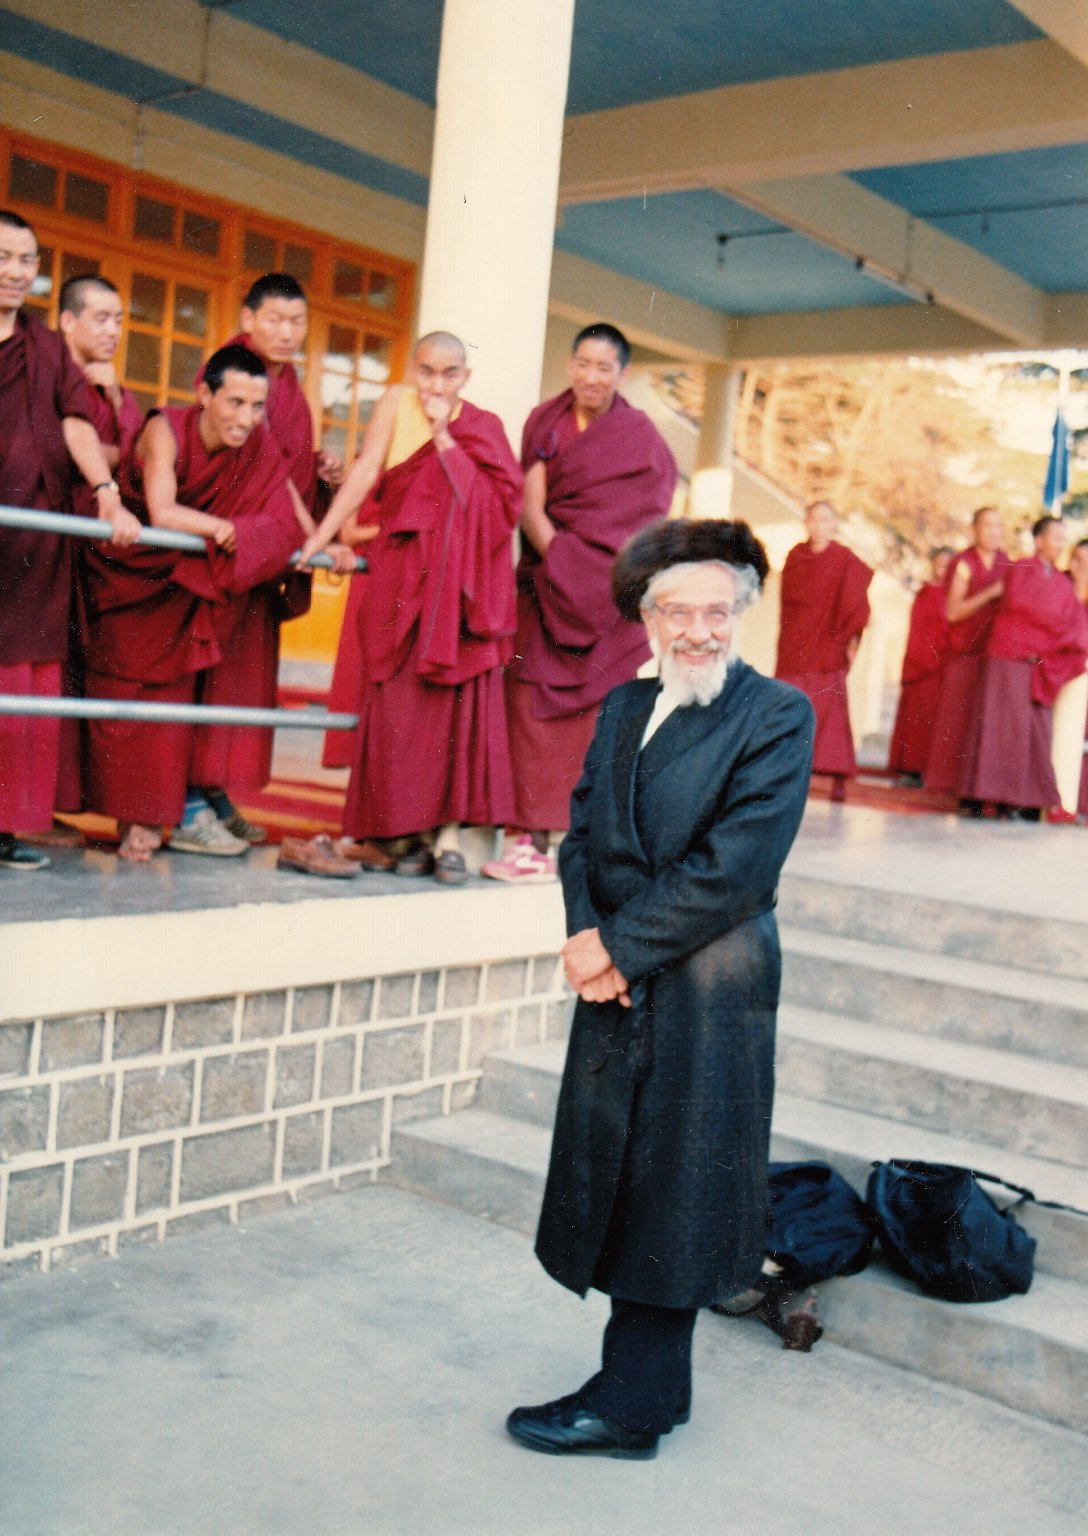 Rabbi Zalman Schachter-Shalomi in Hasidic strimel and bekeshe with a group of Tibetan Buddhist monks, Fall 1990.